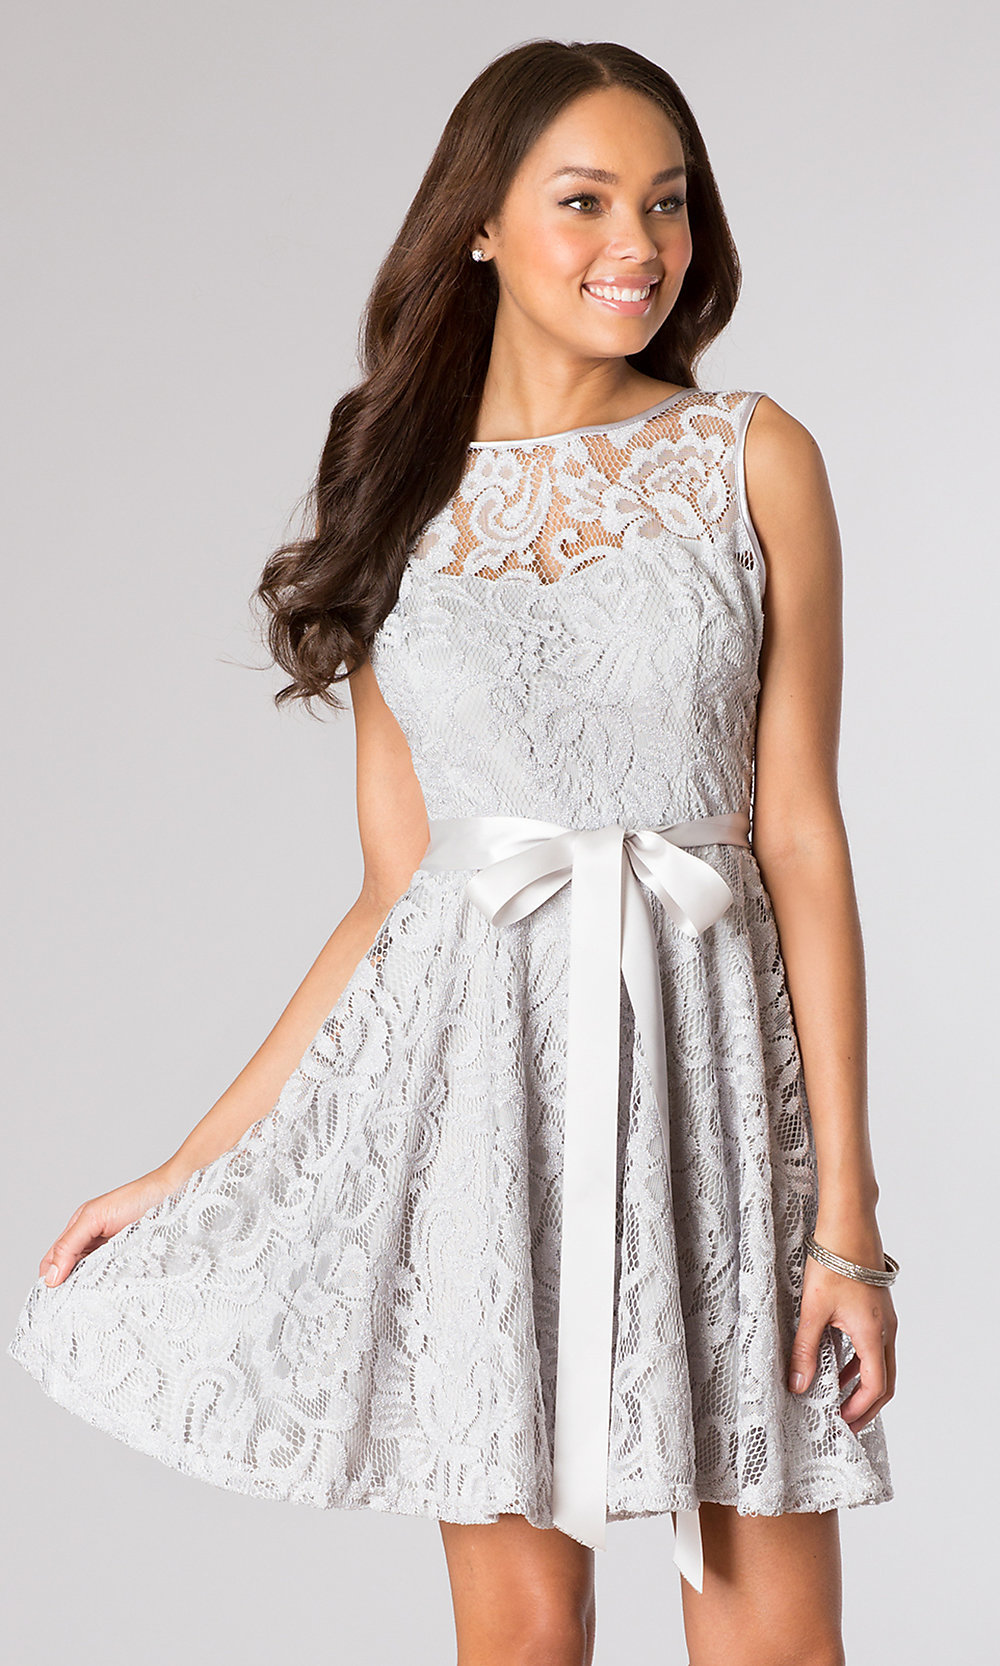 Short Silver Lace Party Dress with Belt  PromGirl